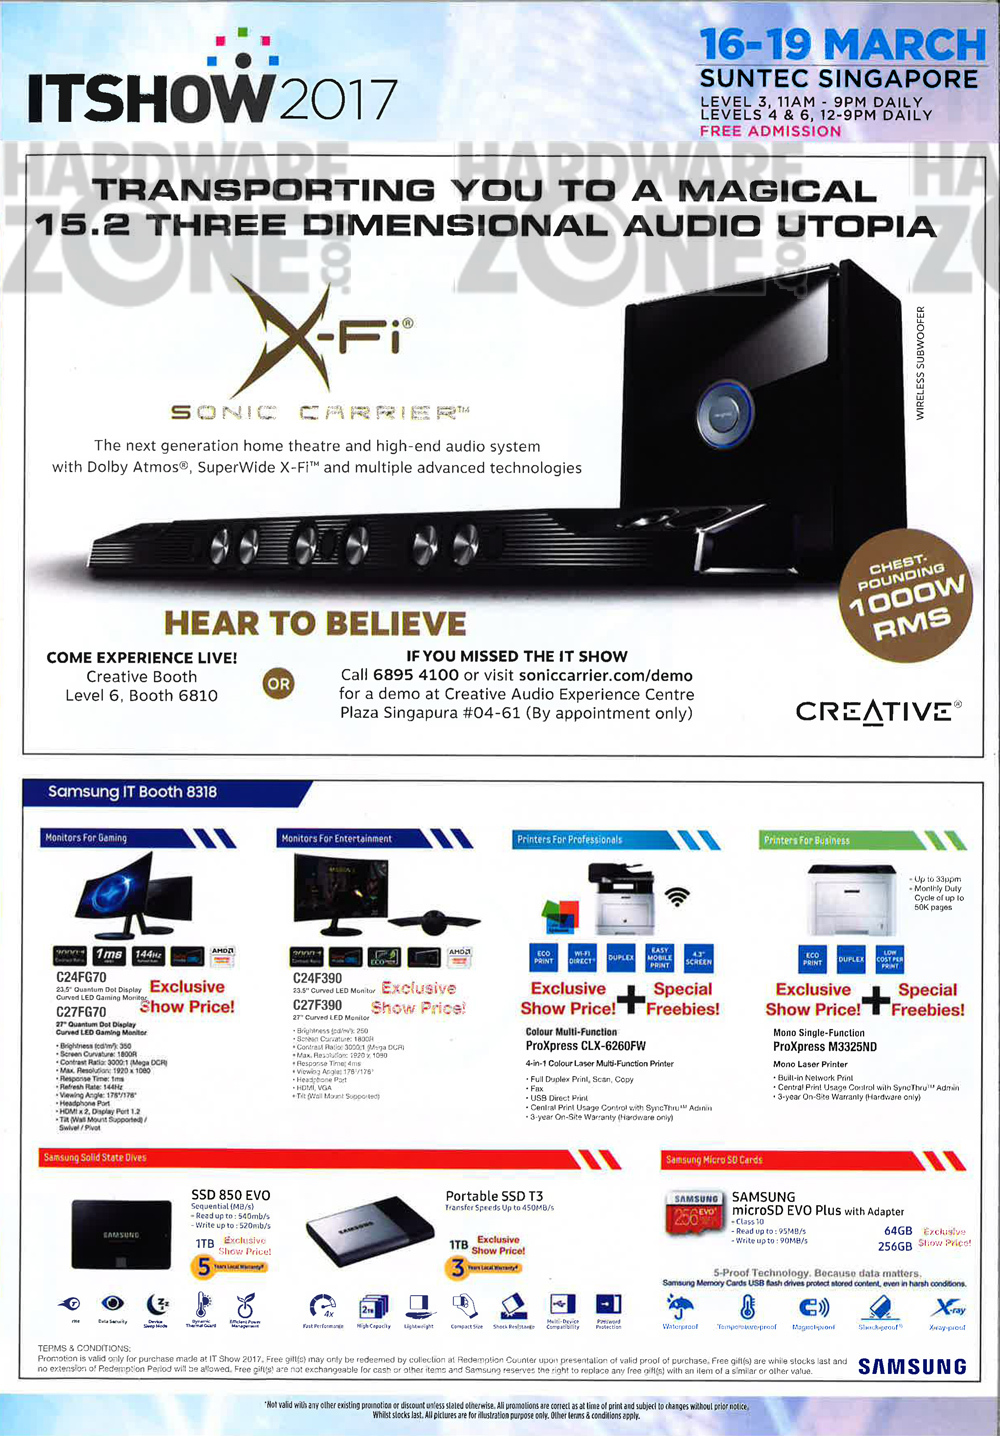 Asus gaming desktops amp monitors brochures from cee show 2016 singapore - It Show 2017 Brochure Pg 03